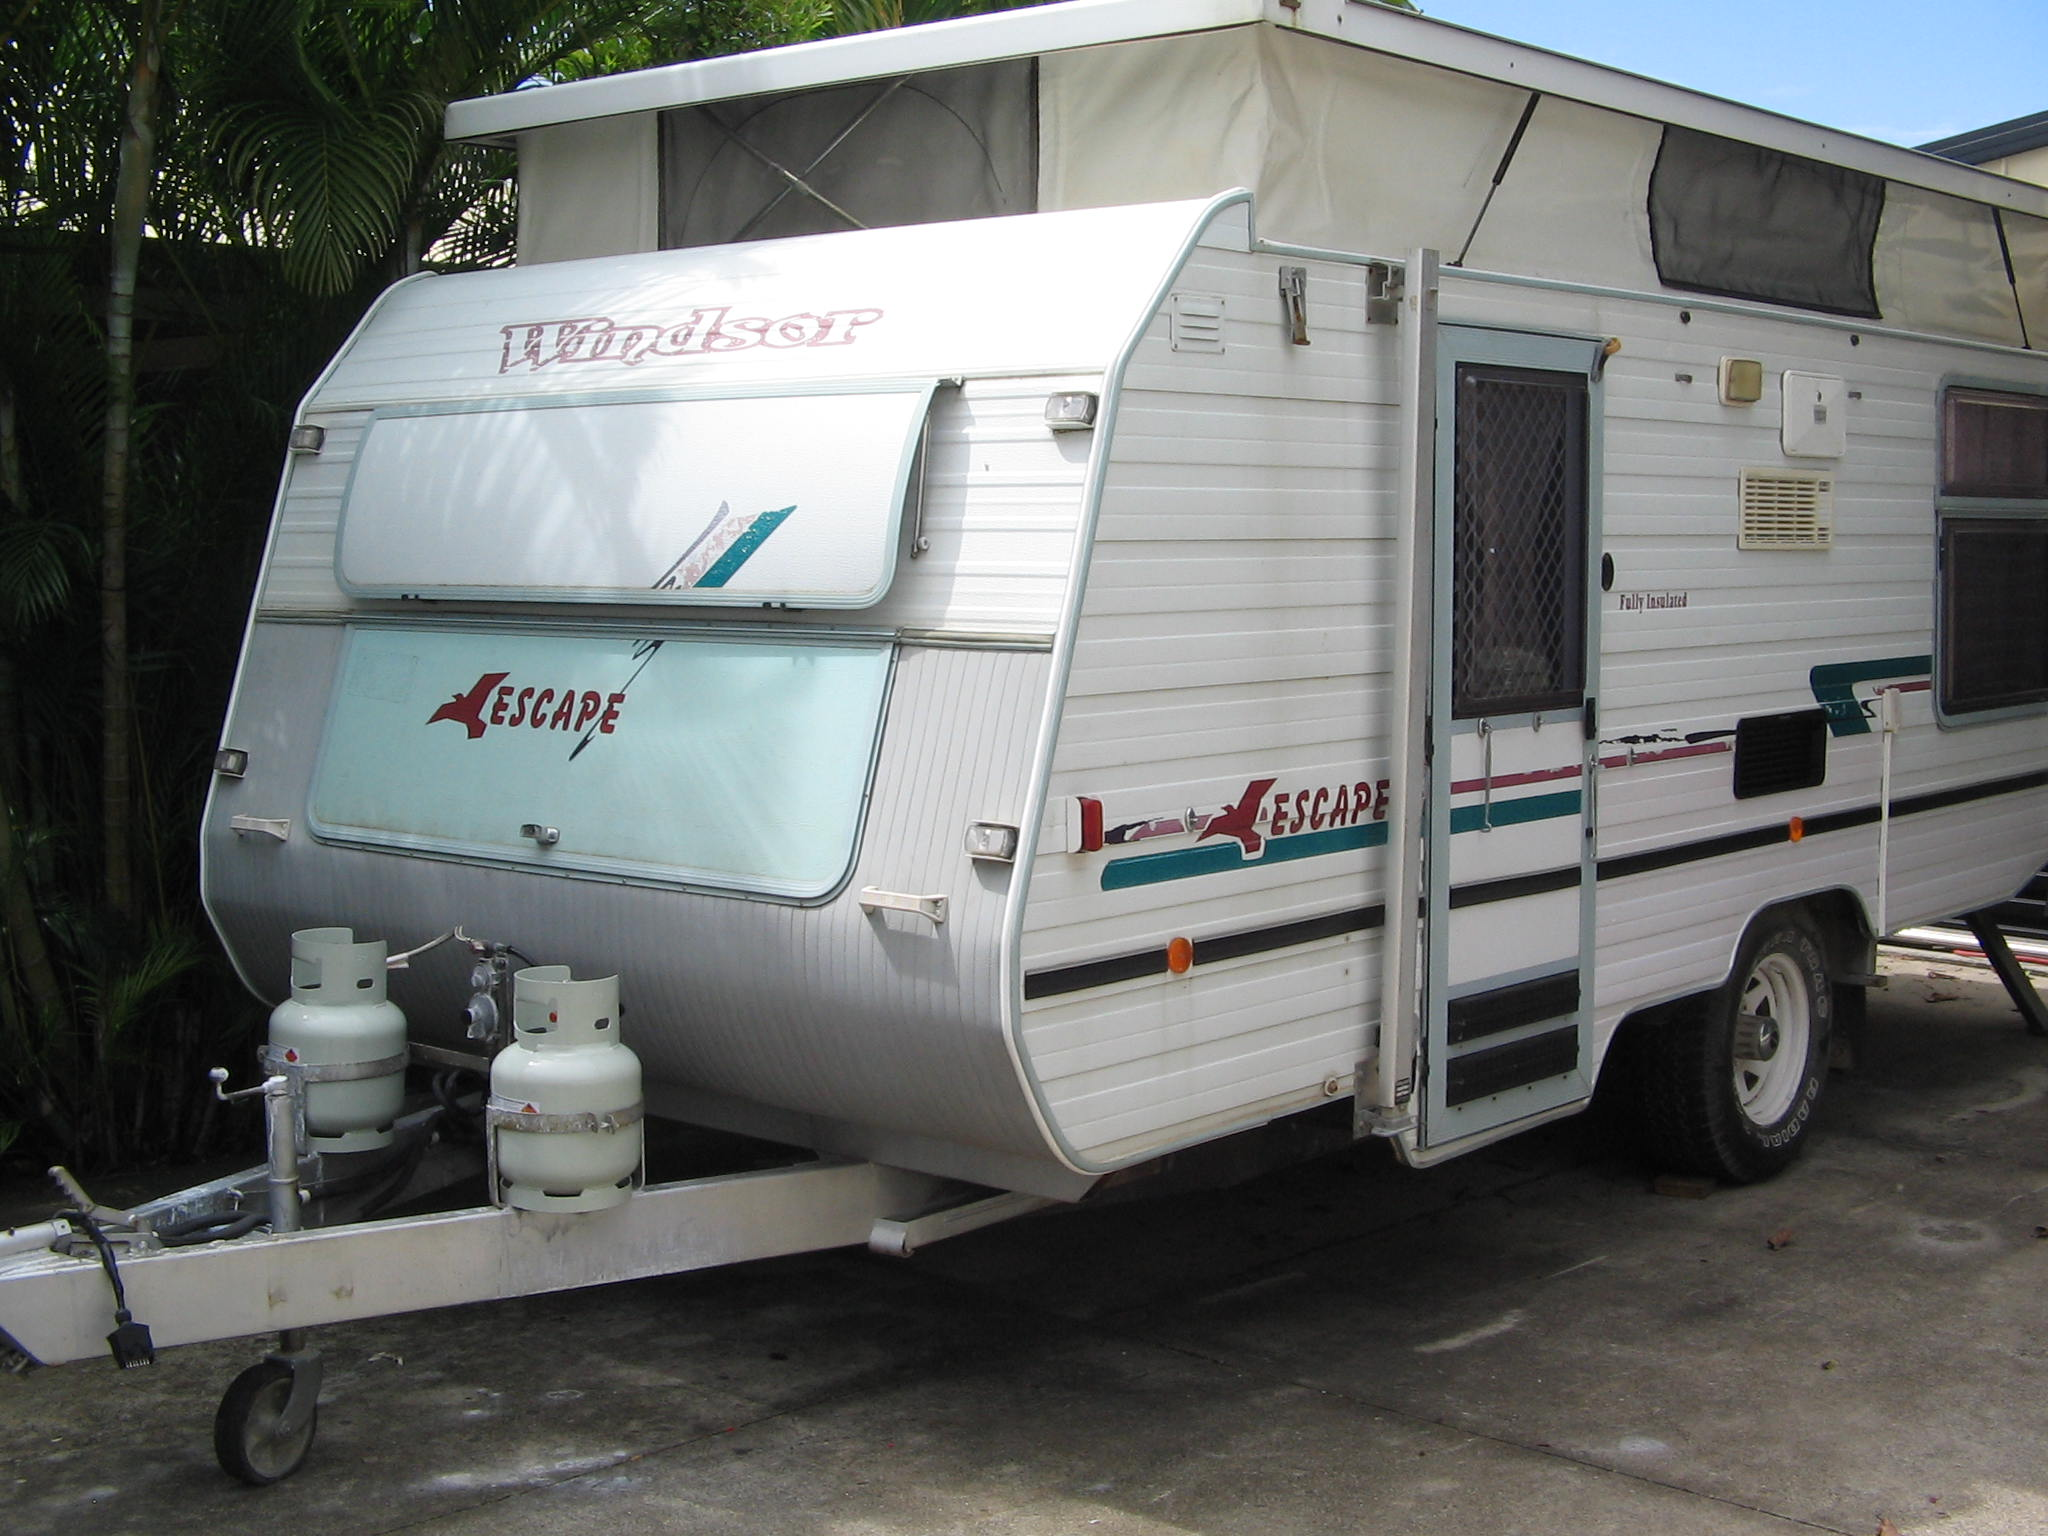 Off-Road, 18ft, Shower (External), RWC Gas Certificate, Registered, Solar Panells, Vanity, Double...